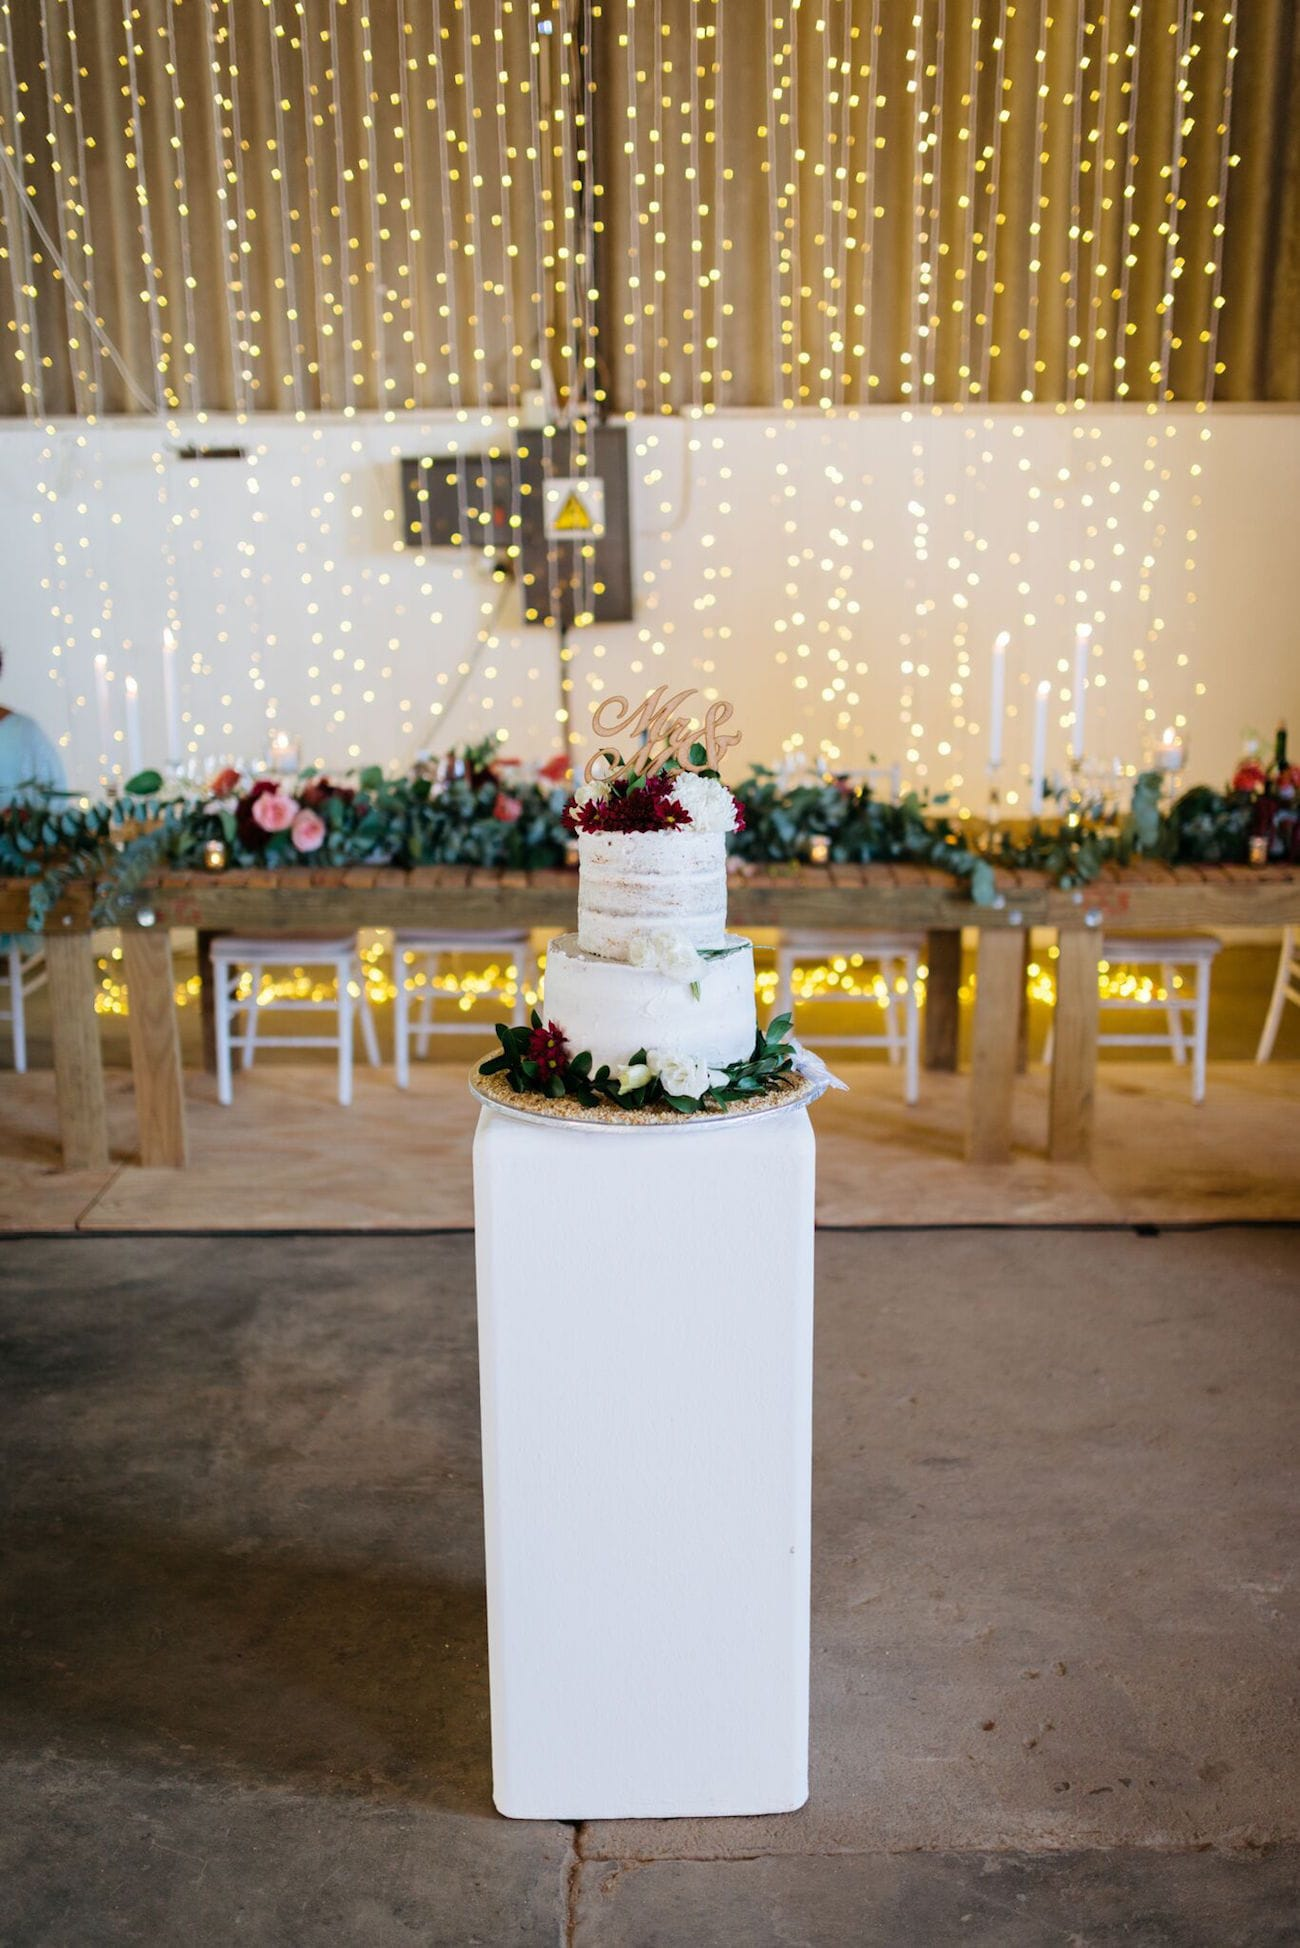 Semi-naked wedding cake with twinkle light backdrop | Credit: Matthew Carr